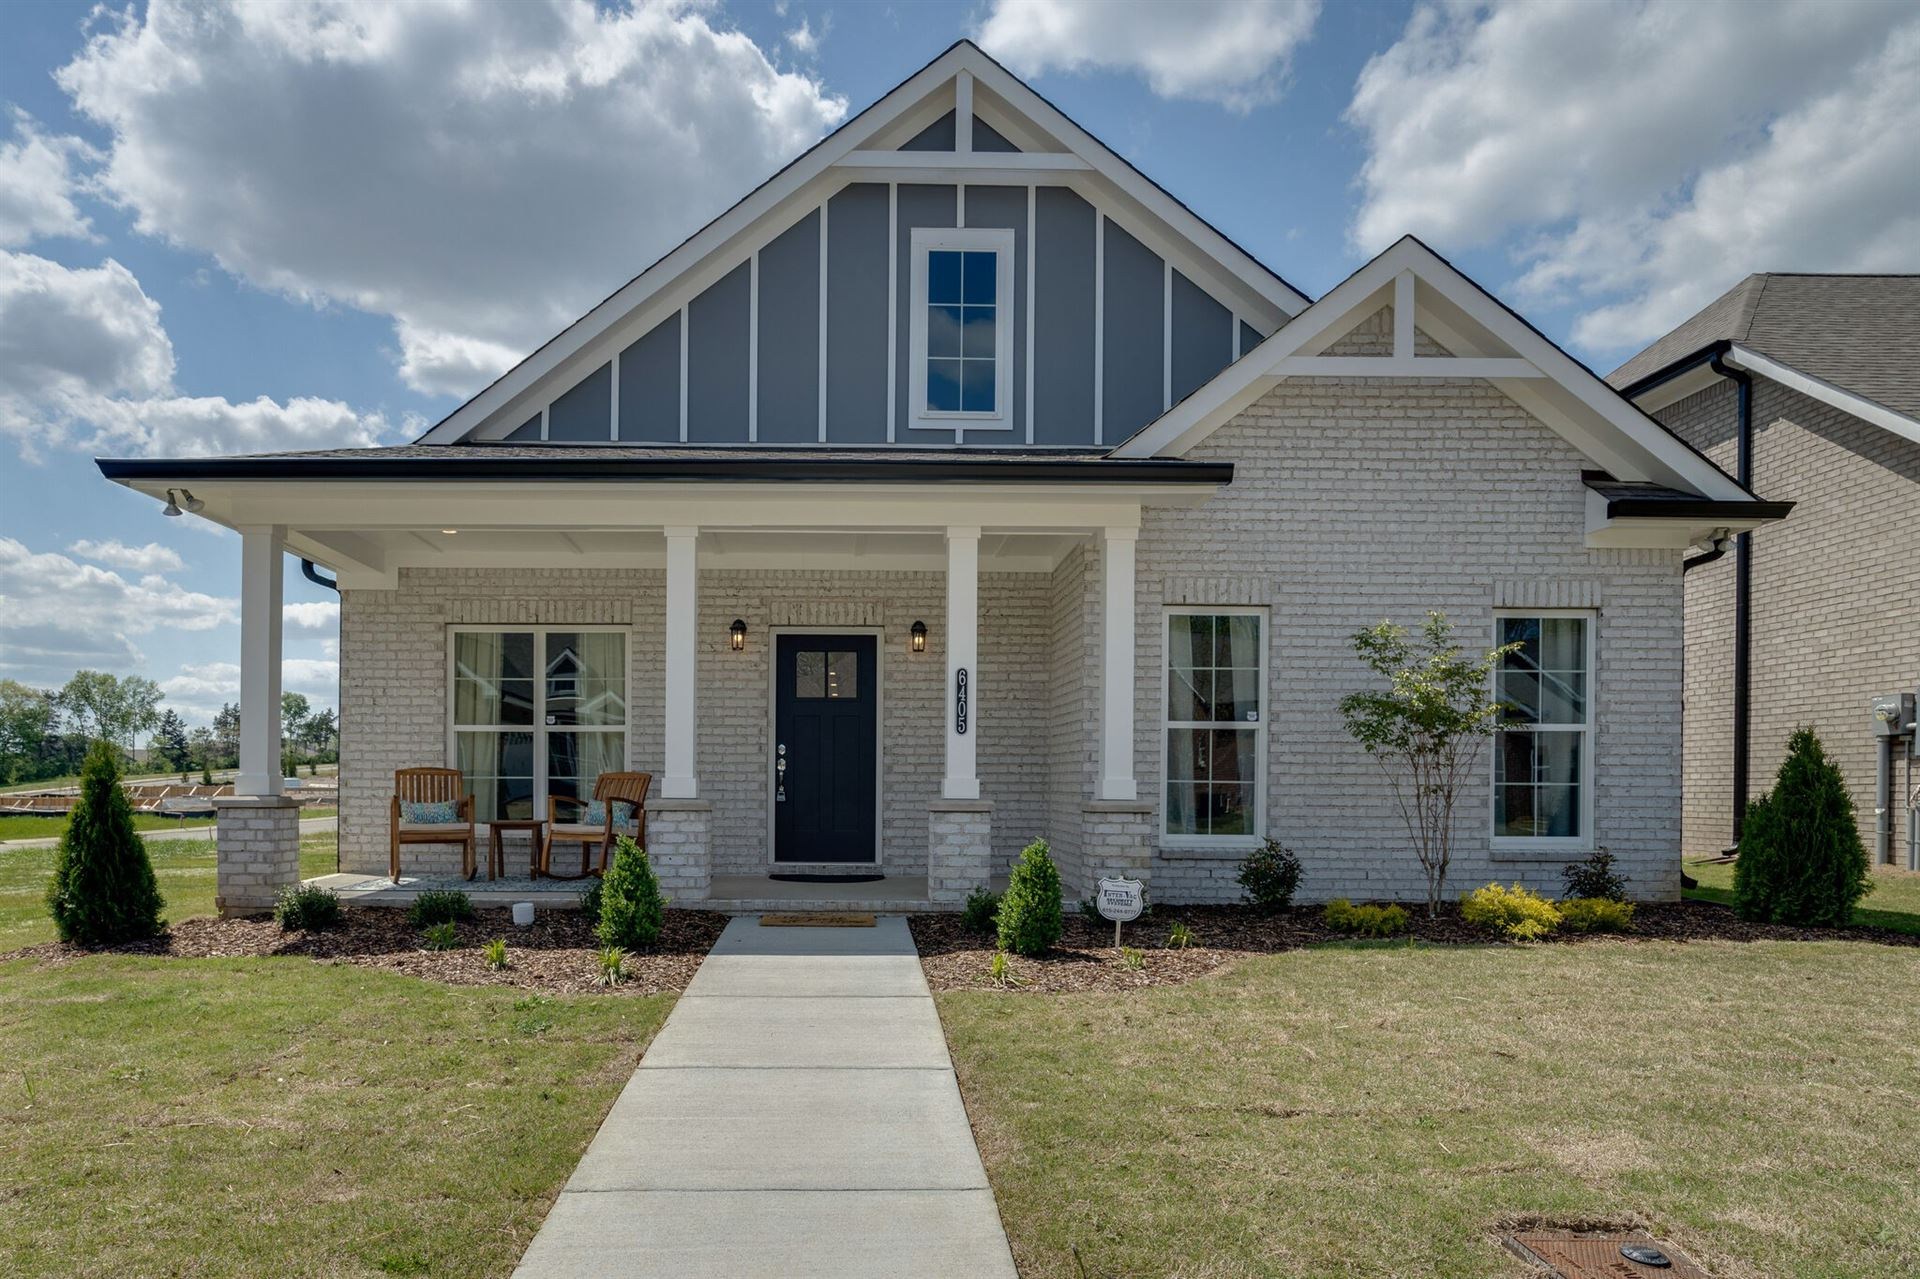 Photo of 6429 Armstrong Dr., Hermitage, TN 37076 (MLS # 2247411)